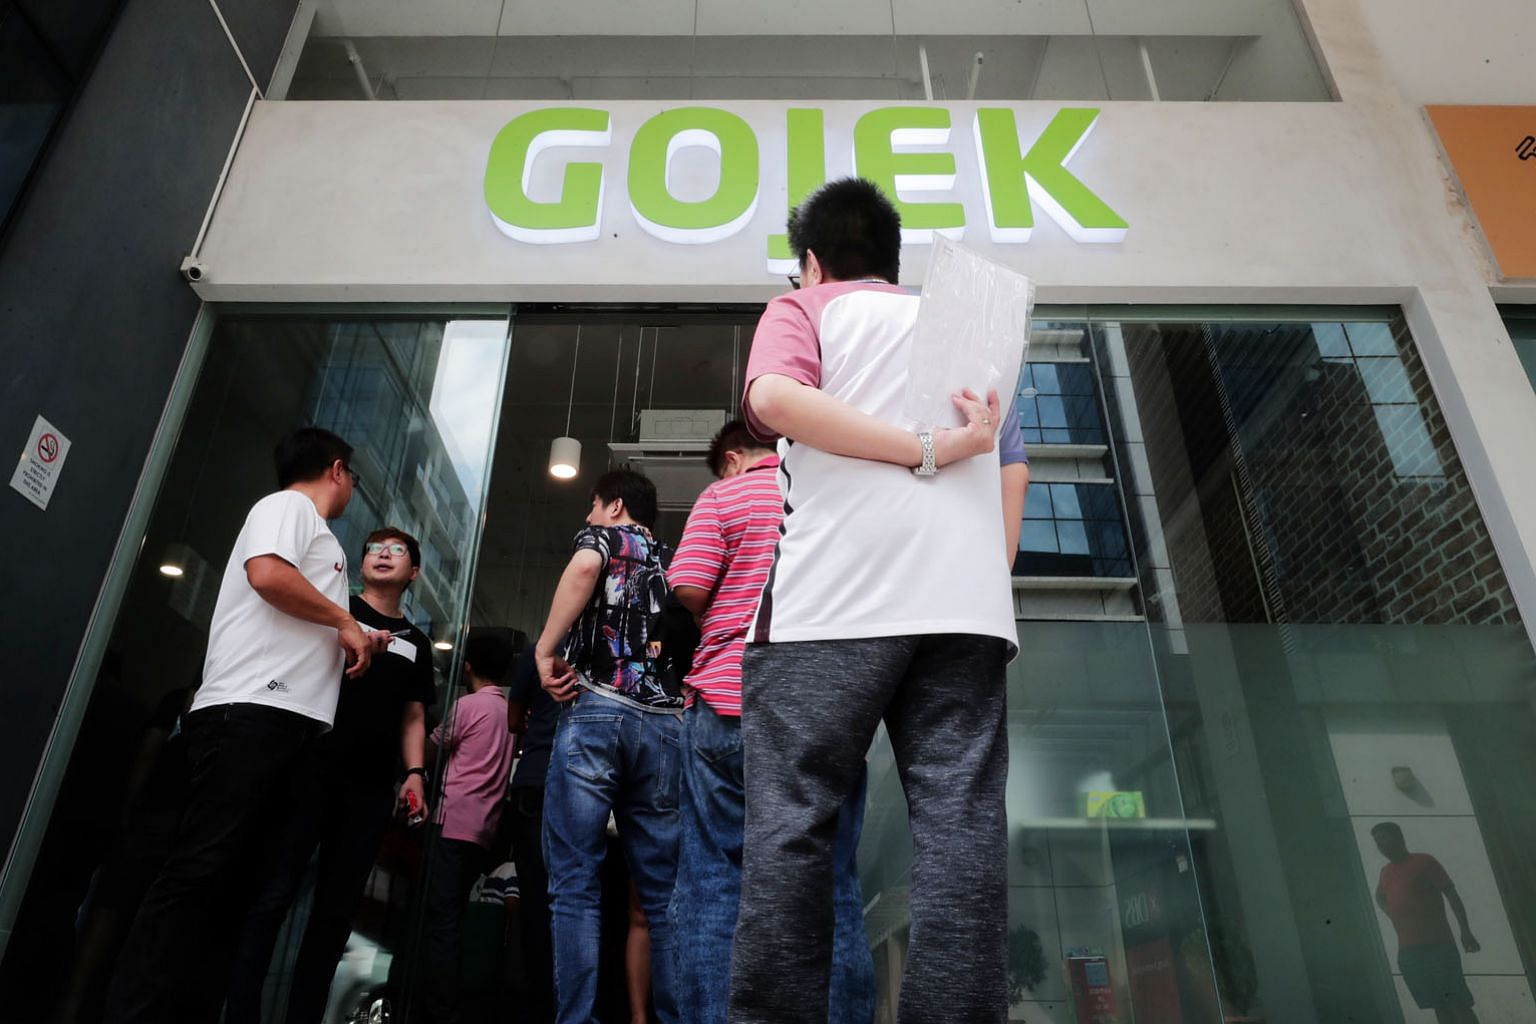 Gojek drivers can get earnings protection coverage of $80 a day at preferential rates. They will be covered for up to 21 days of medical leave and 84 days of hospitalisation leave. The scheme, which takes effect from April 1, was designed in consulta